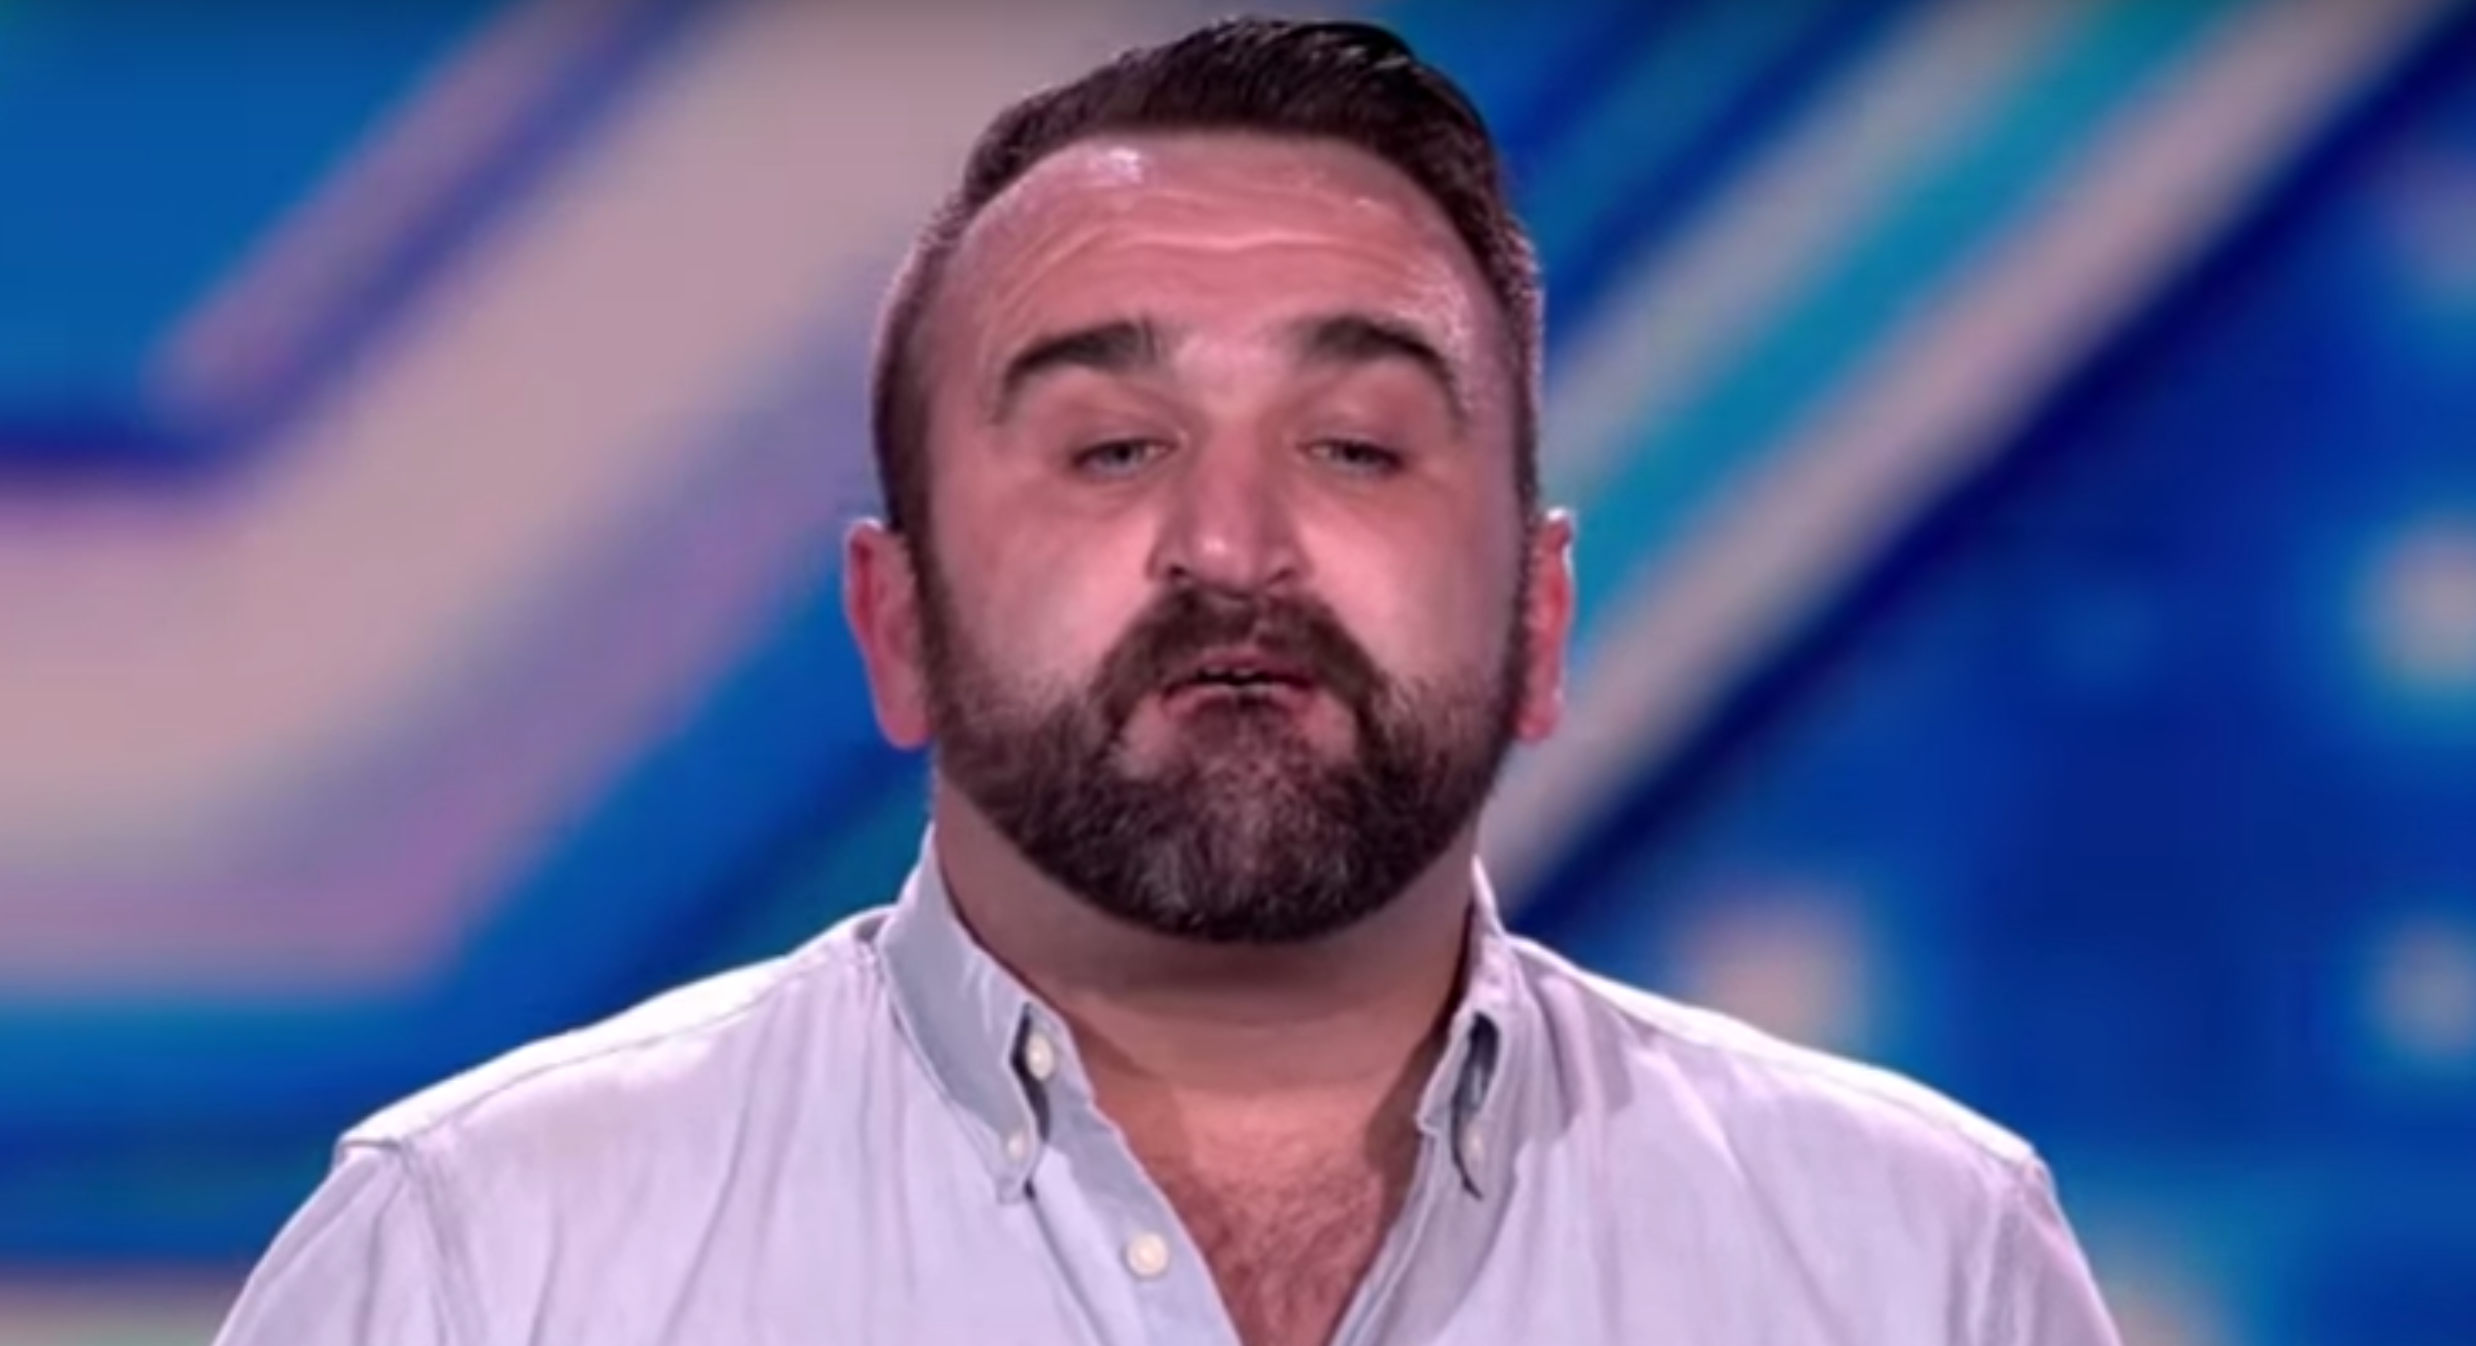 Victim's parents compare disgraced X Factor singer Danny Tetley to Jimmy Savile